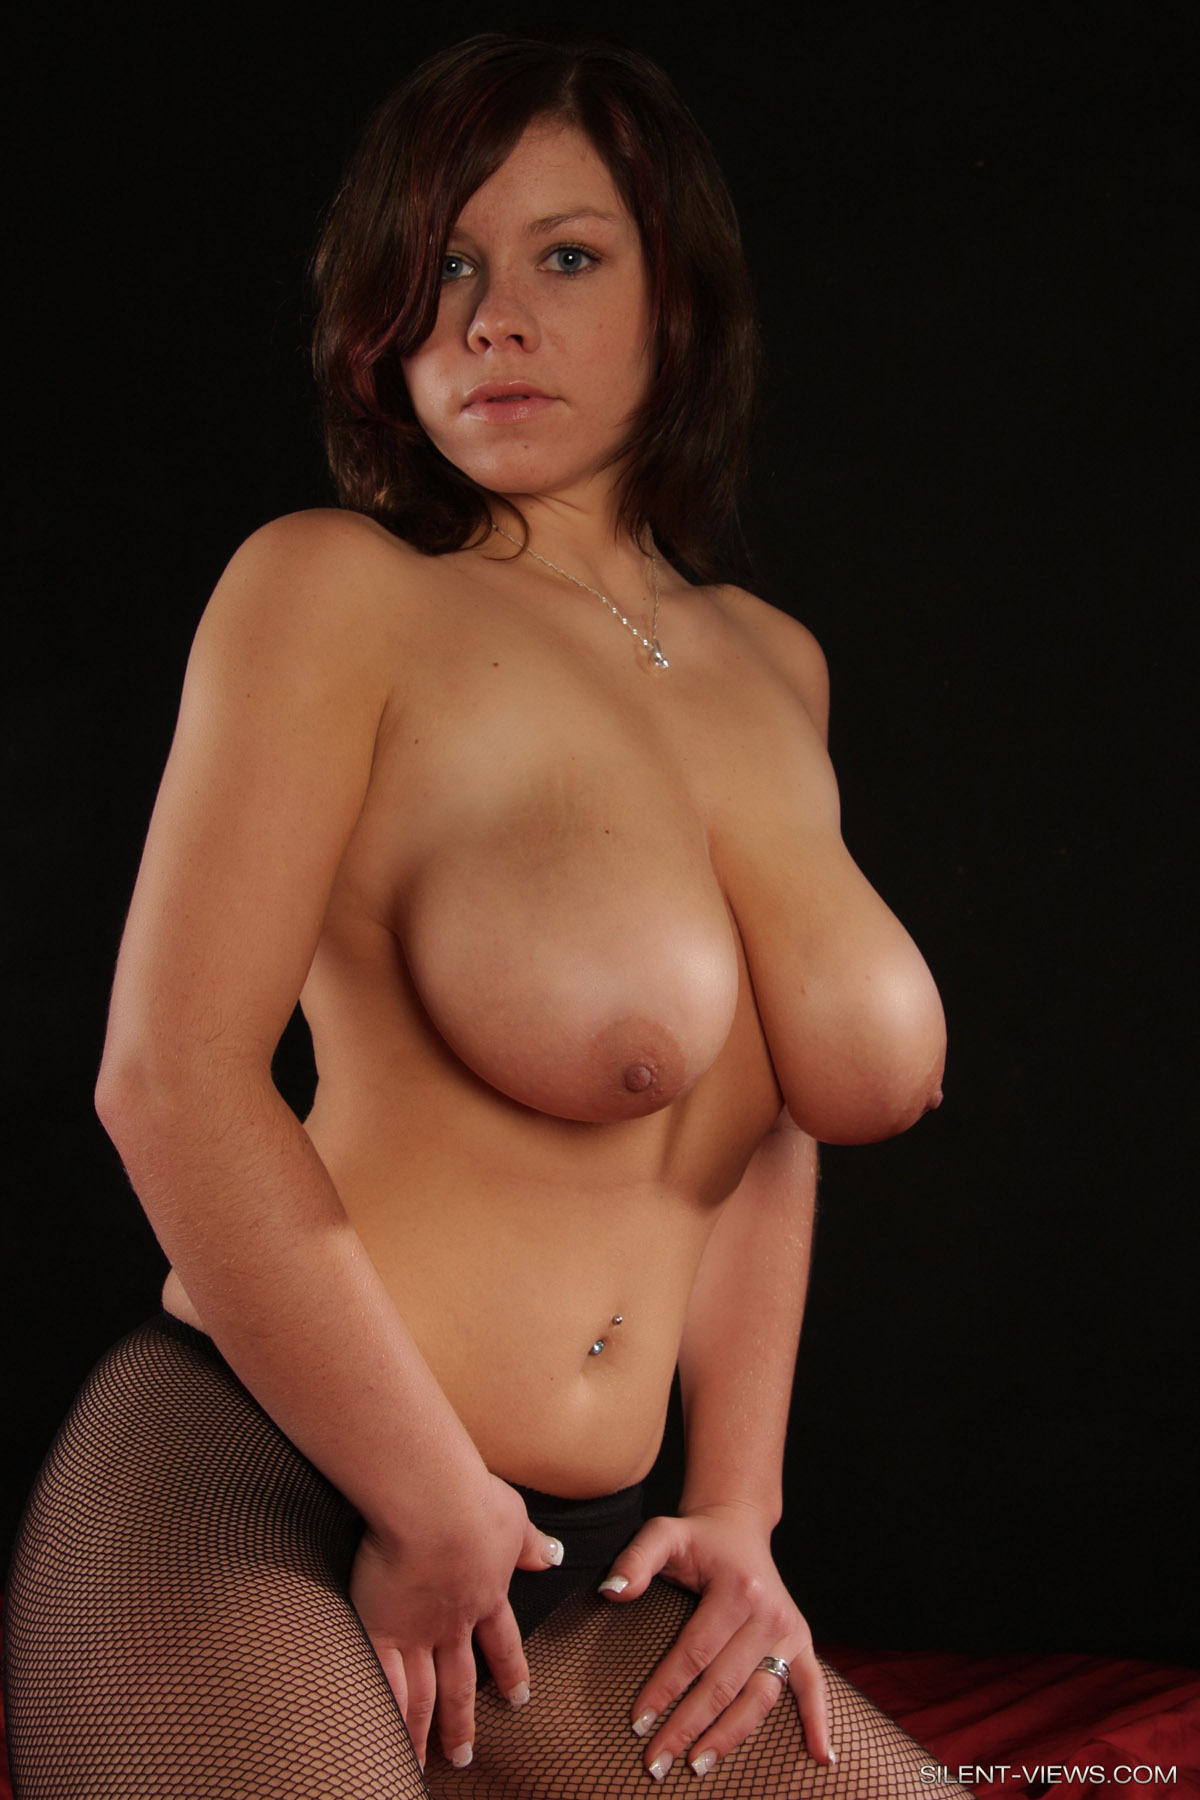 Free hot naked females having sex pictures